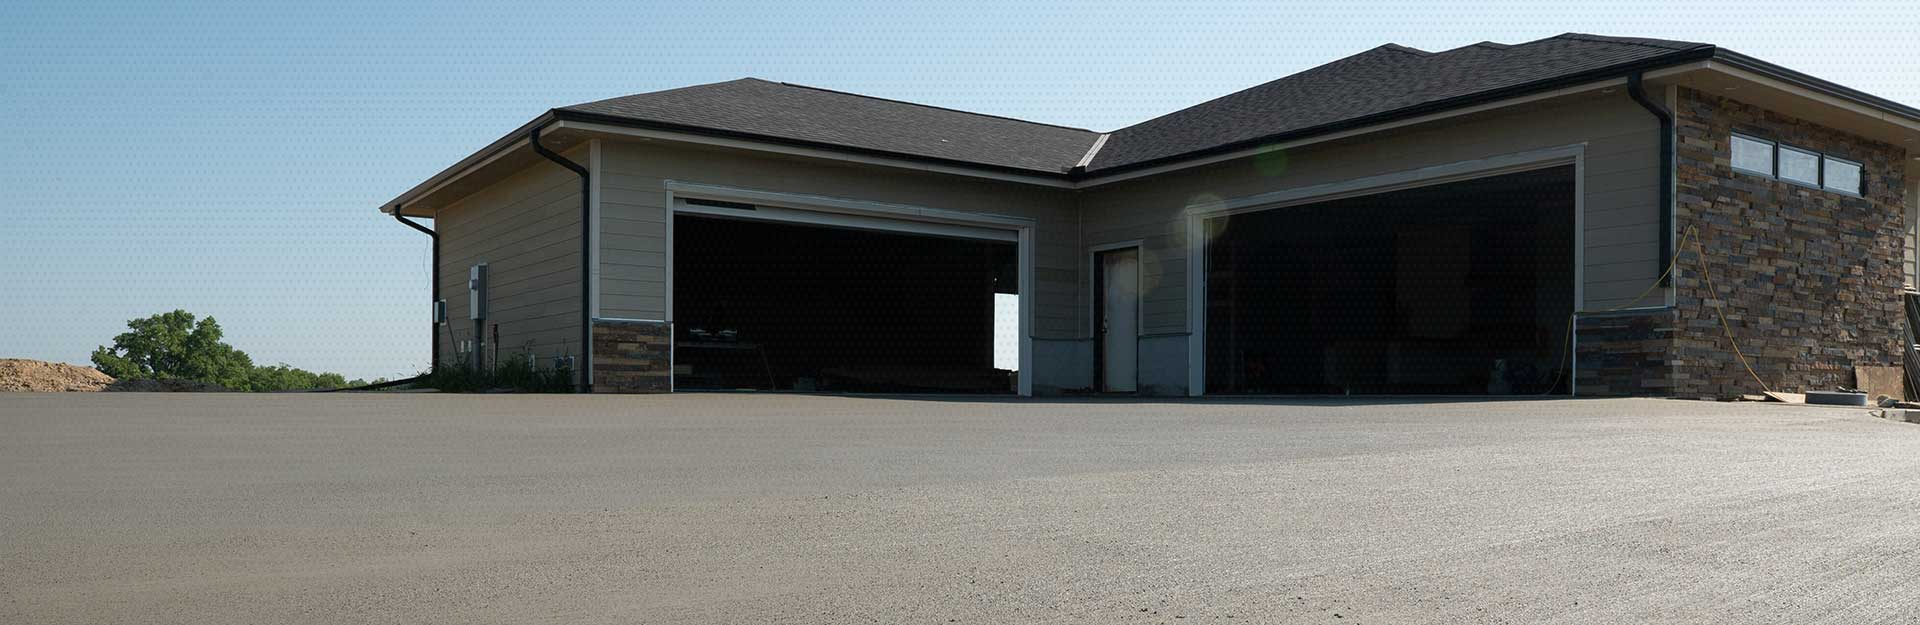 A residential home with a brand new driveway.